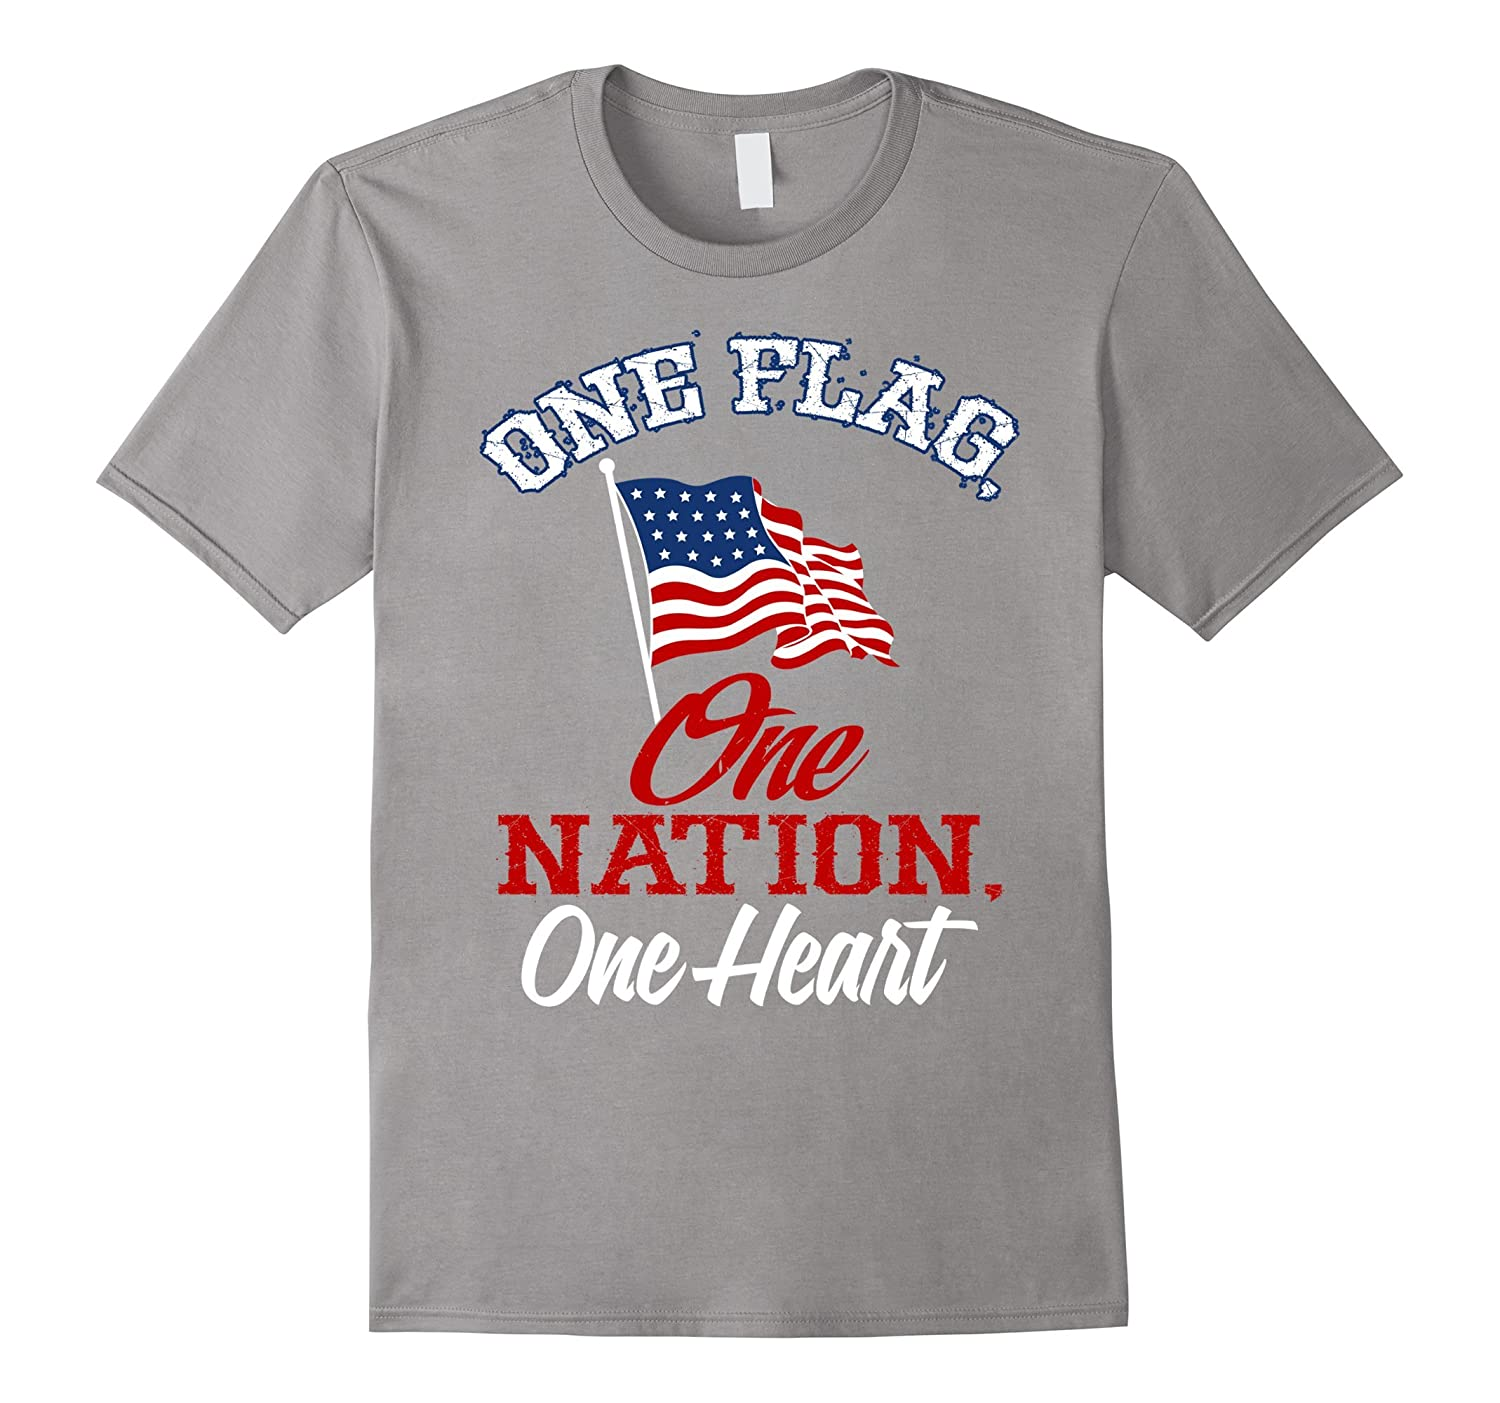 One Flag, One Nation,One Heart American Flag Graphic T shirt-Art